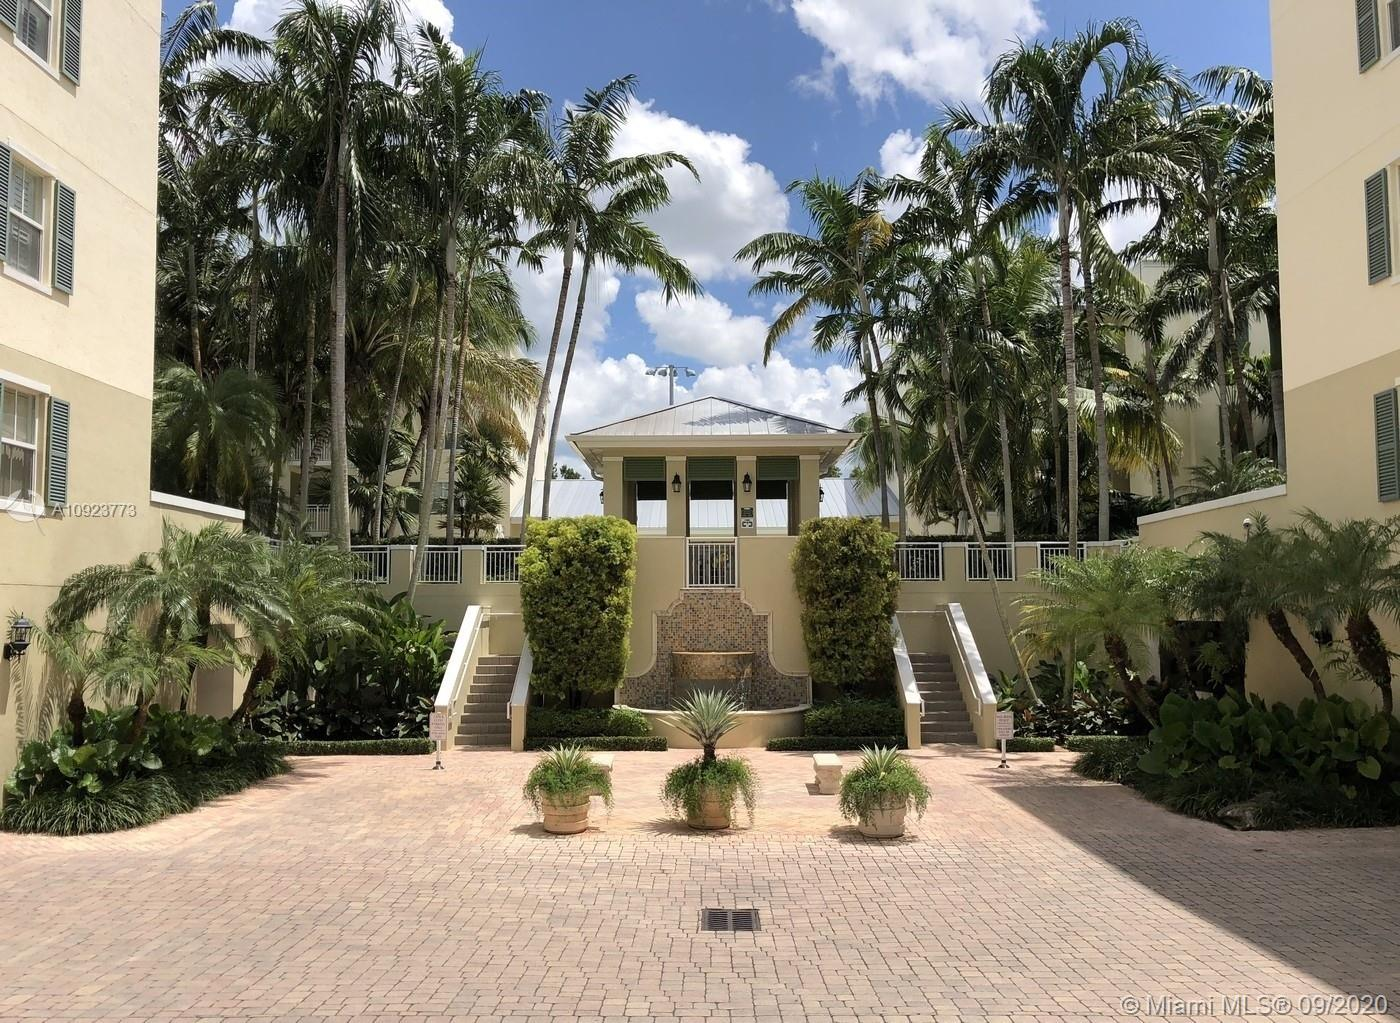 7604 SW 102nd St #123 For Sale A10923773, FL